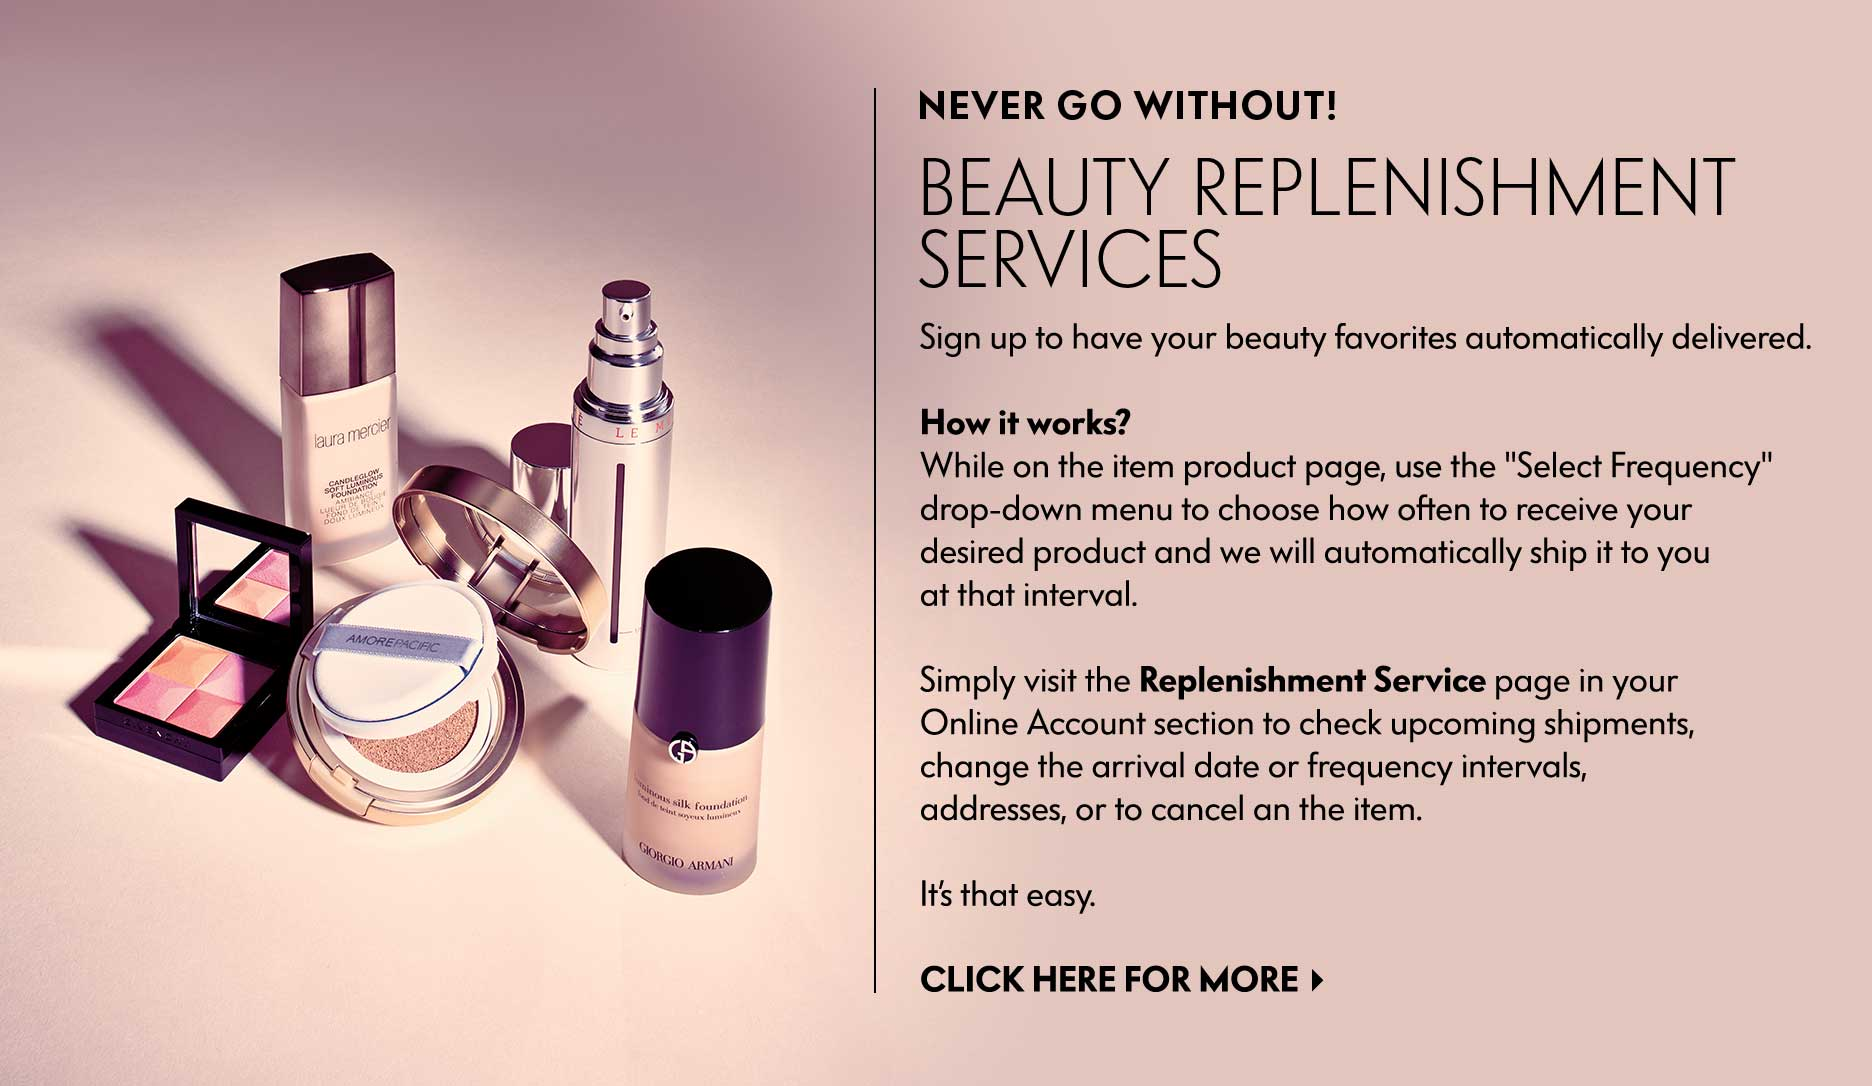 Never Go Without! Beauty Replenishment Services - Sign up to have your beauty favorites automatically delivered.